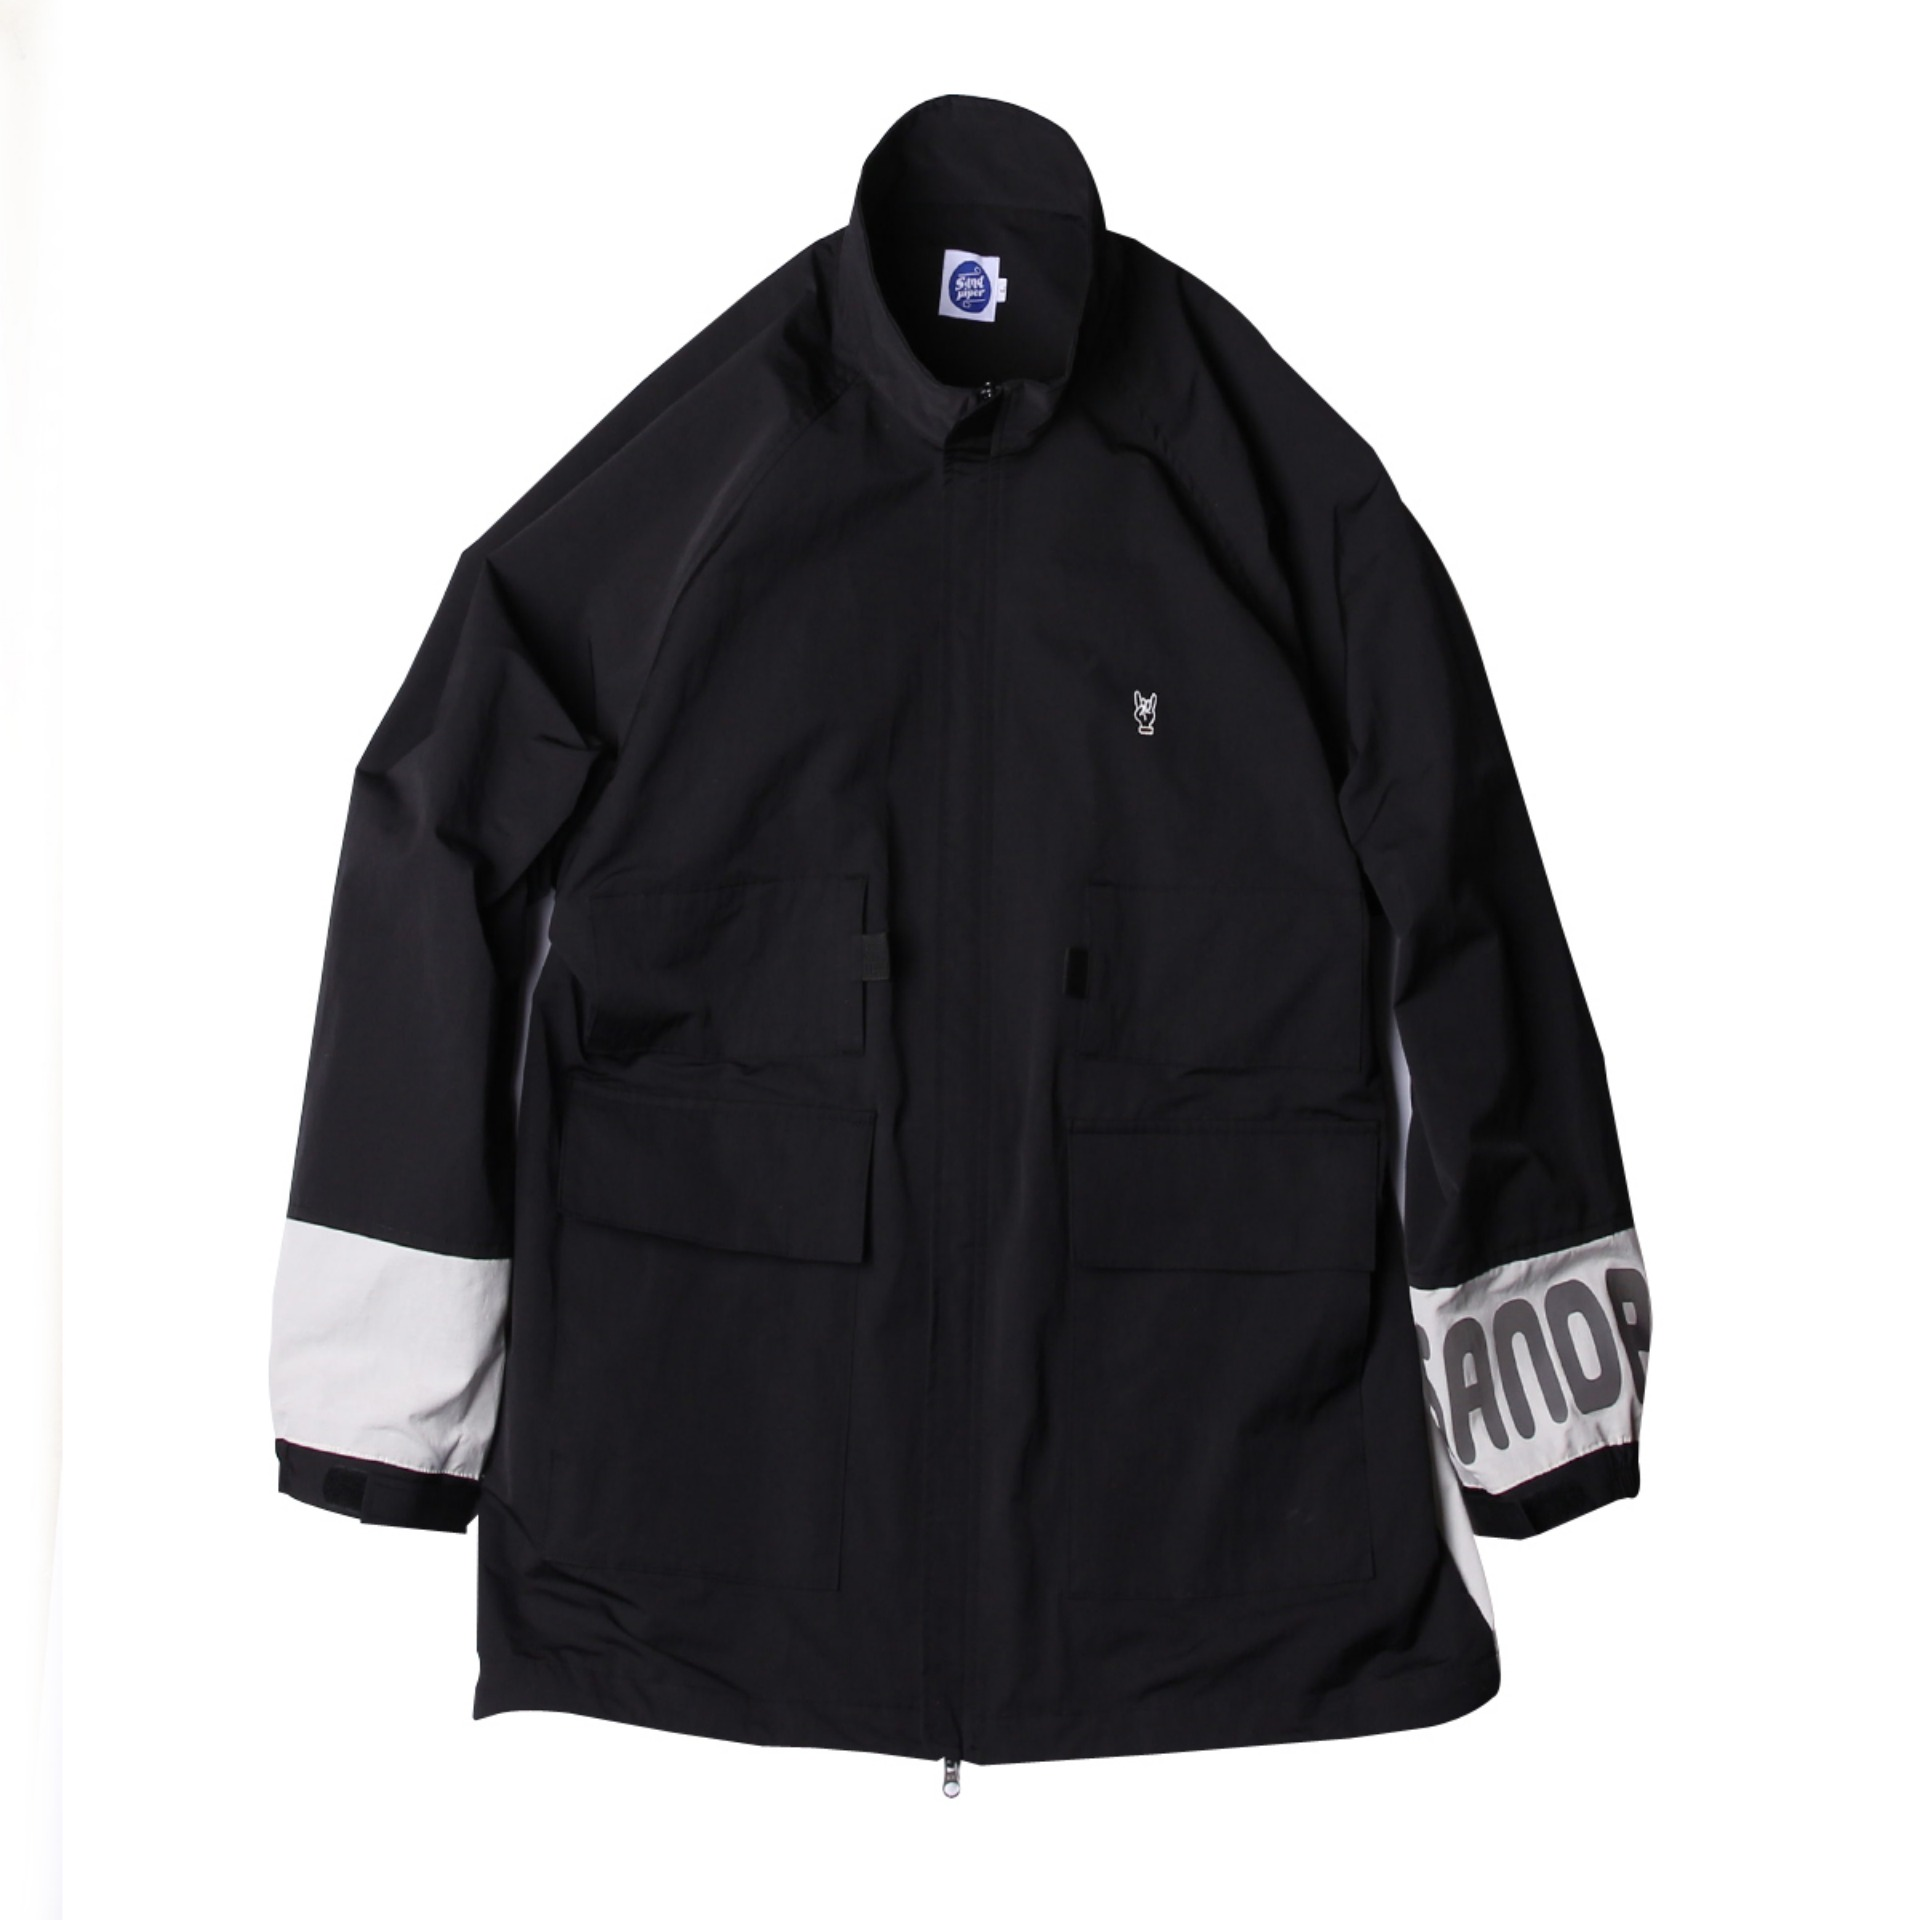 PACKABLE CAMPING JACKET(Black x Light Grey)